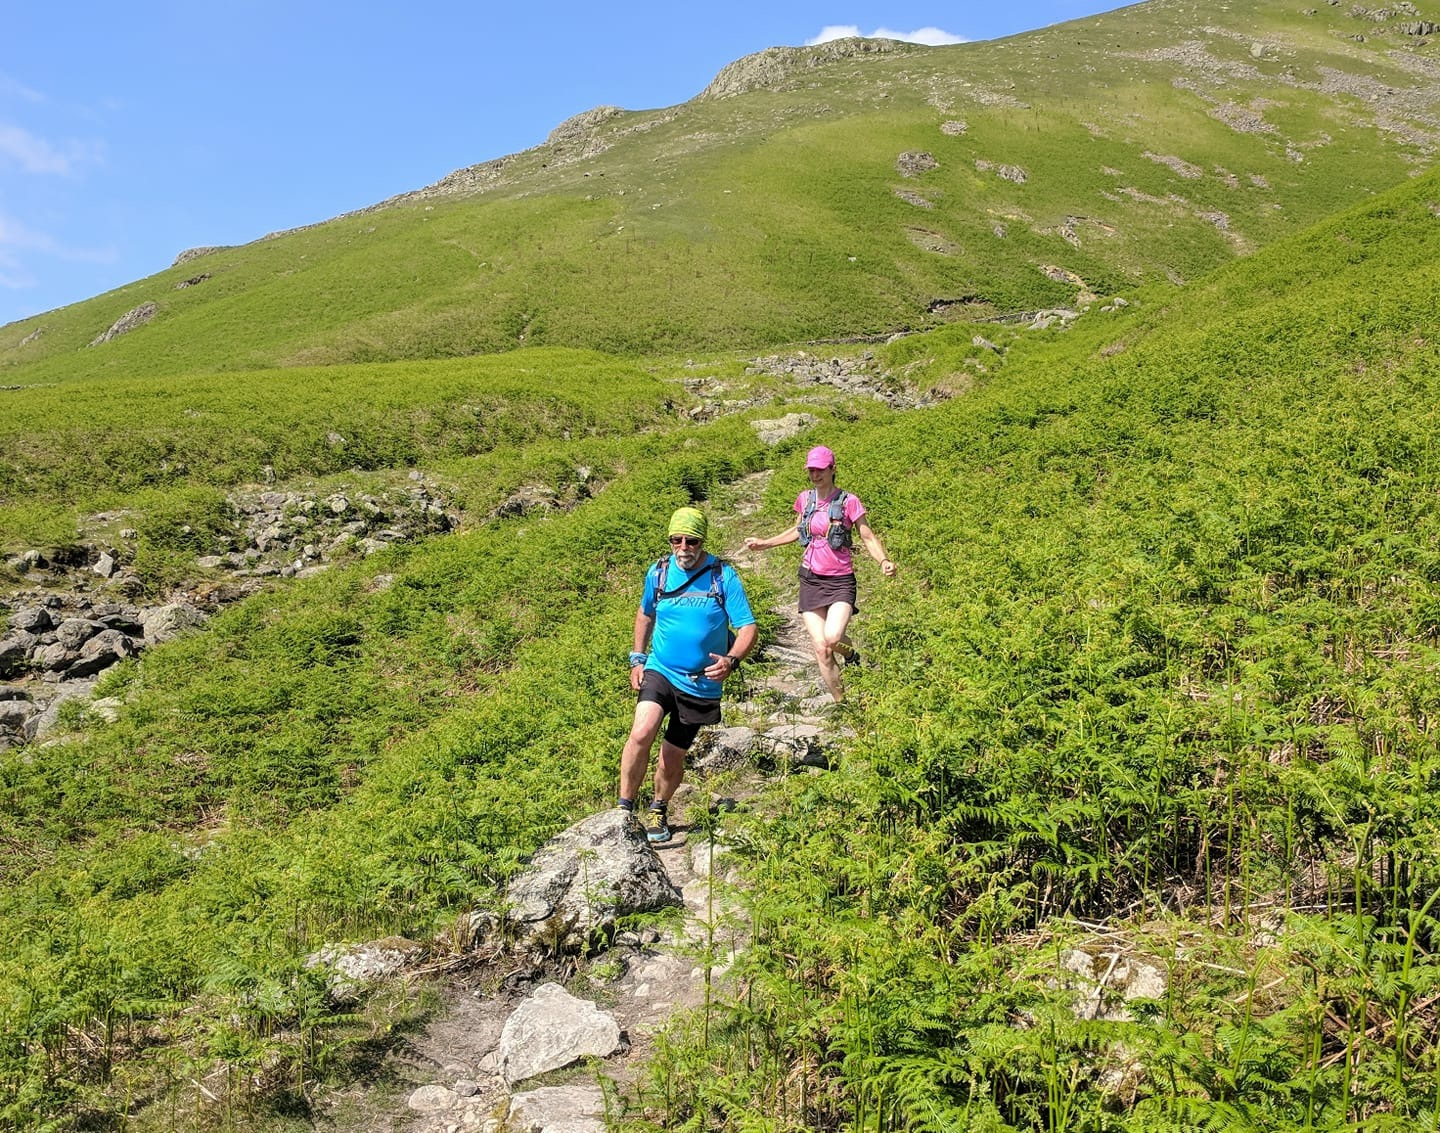 #Run1000Milers Eddie Arthur and daughter-in-law Lina Arthur coming down from Grisedale to Dunmail